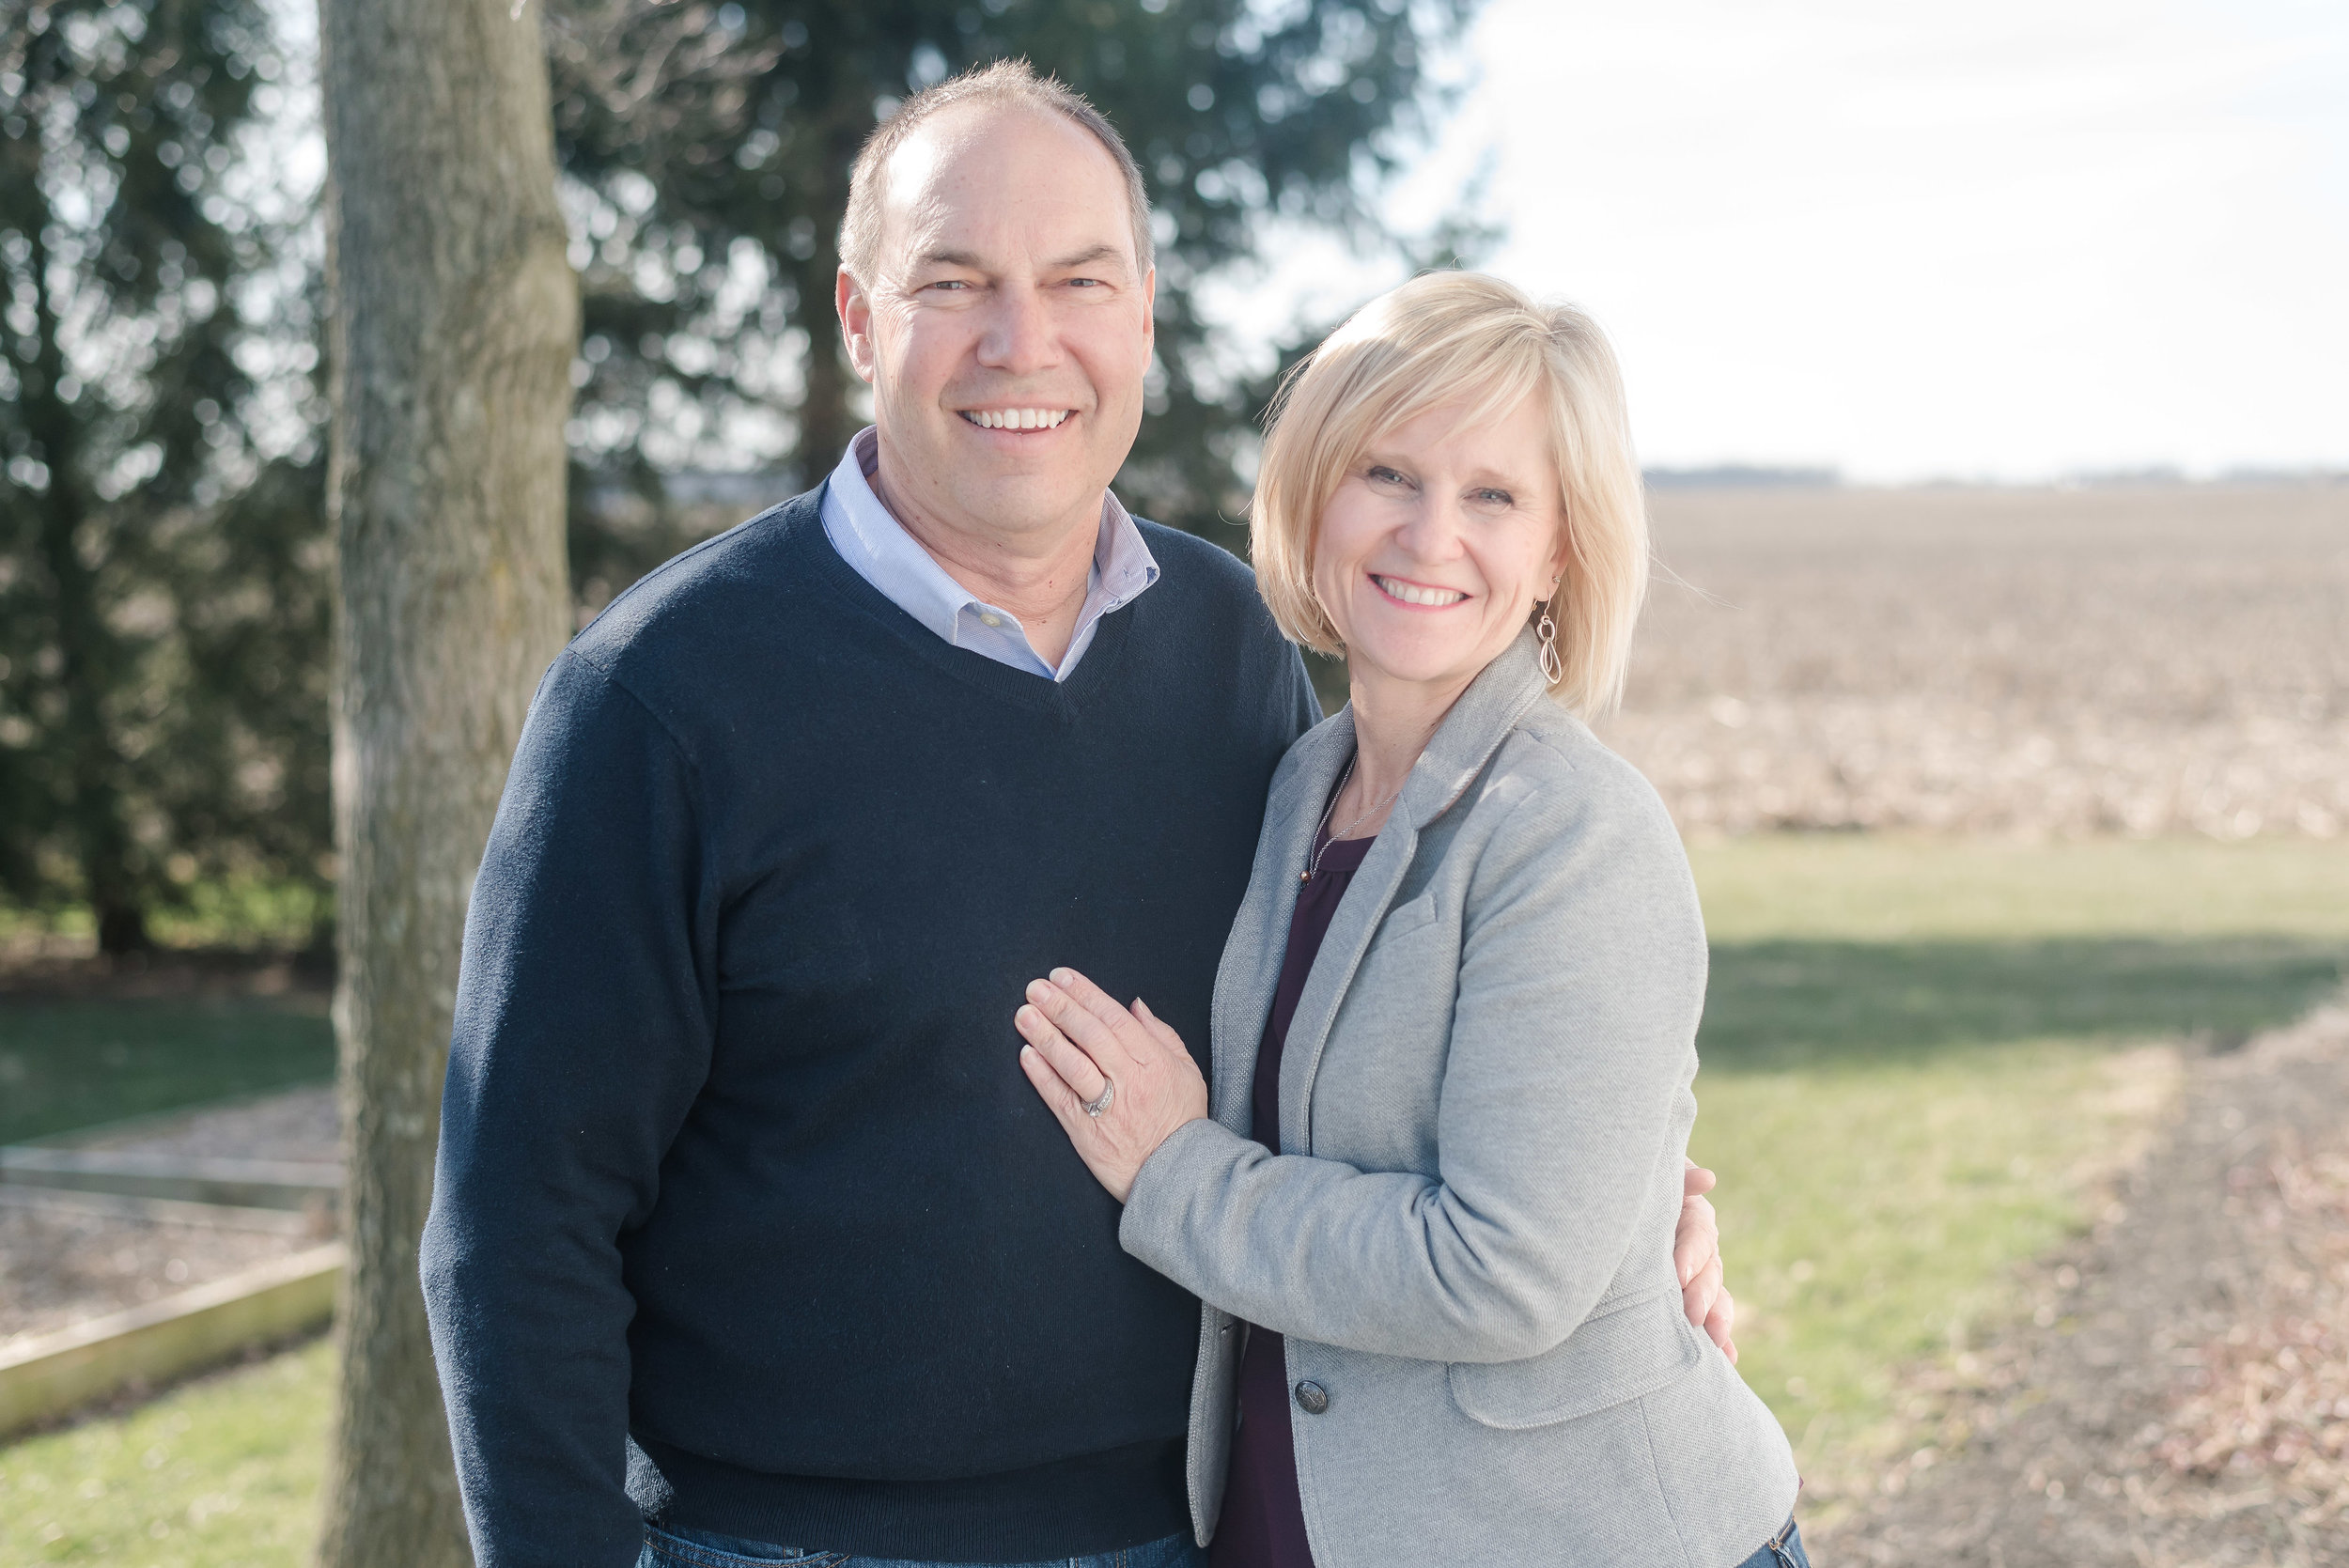 Bob Peterson with his wife Lisa